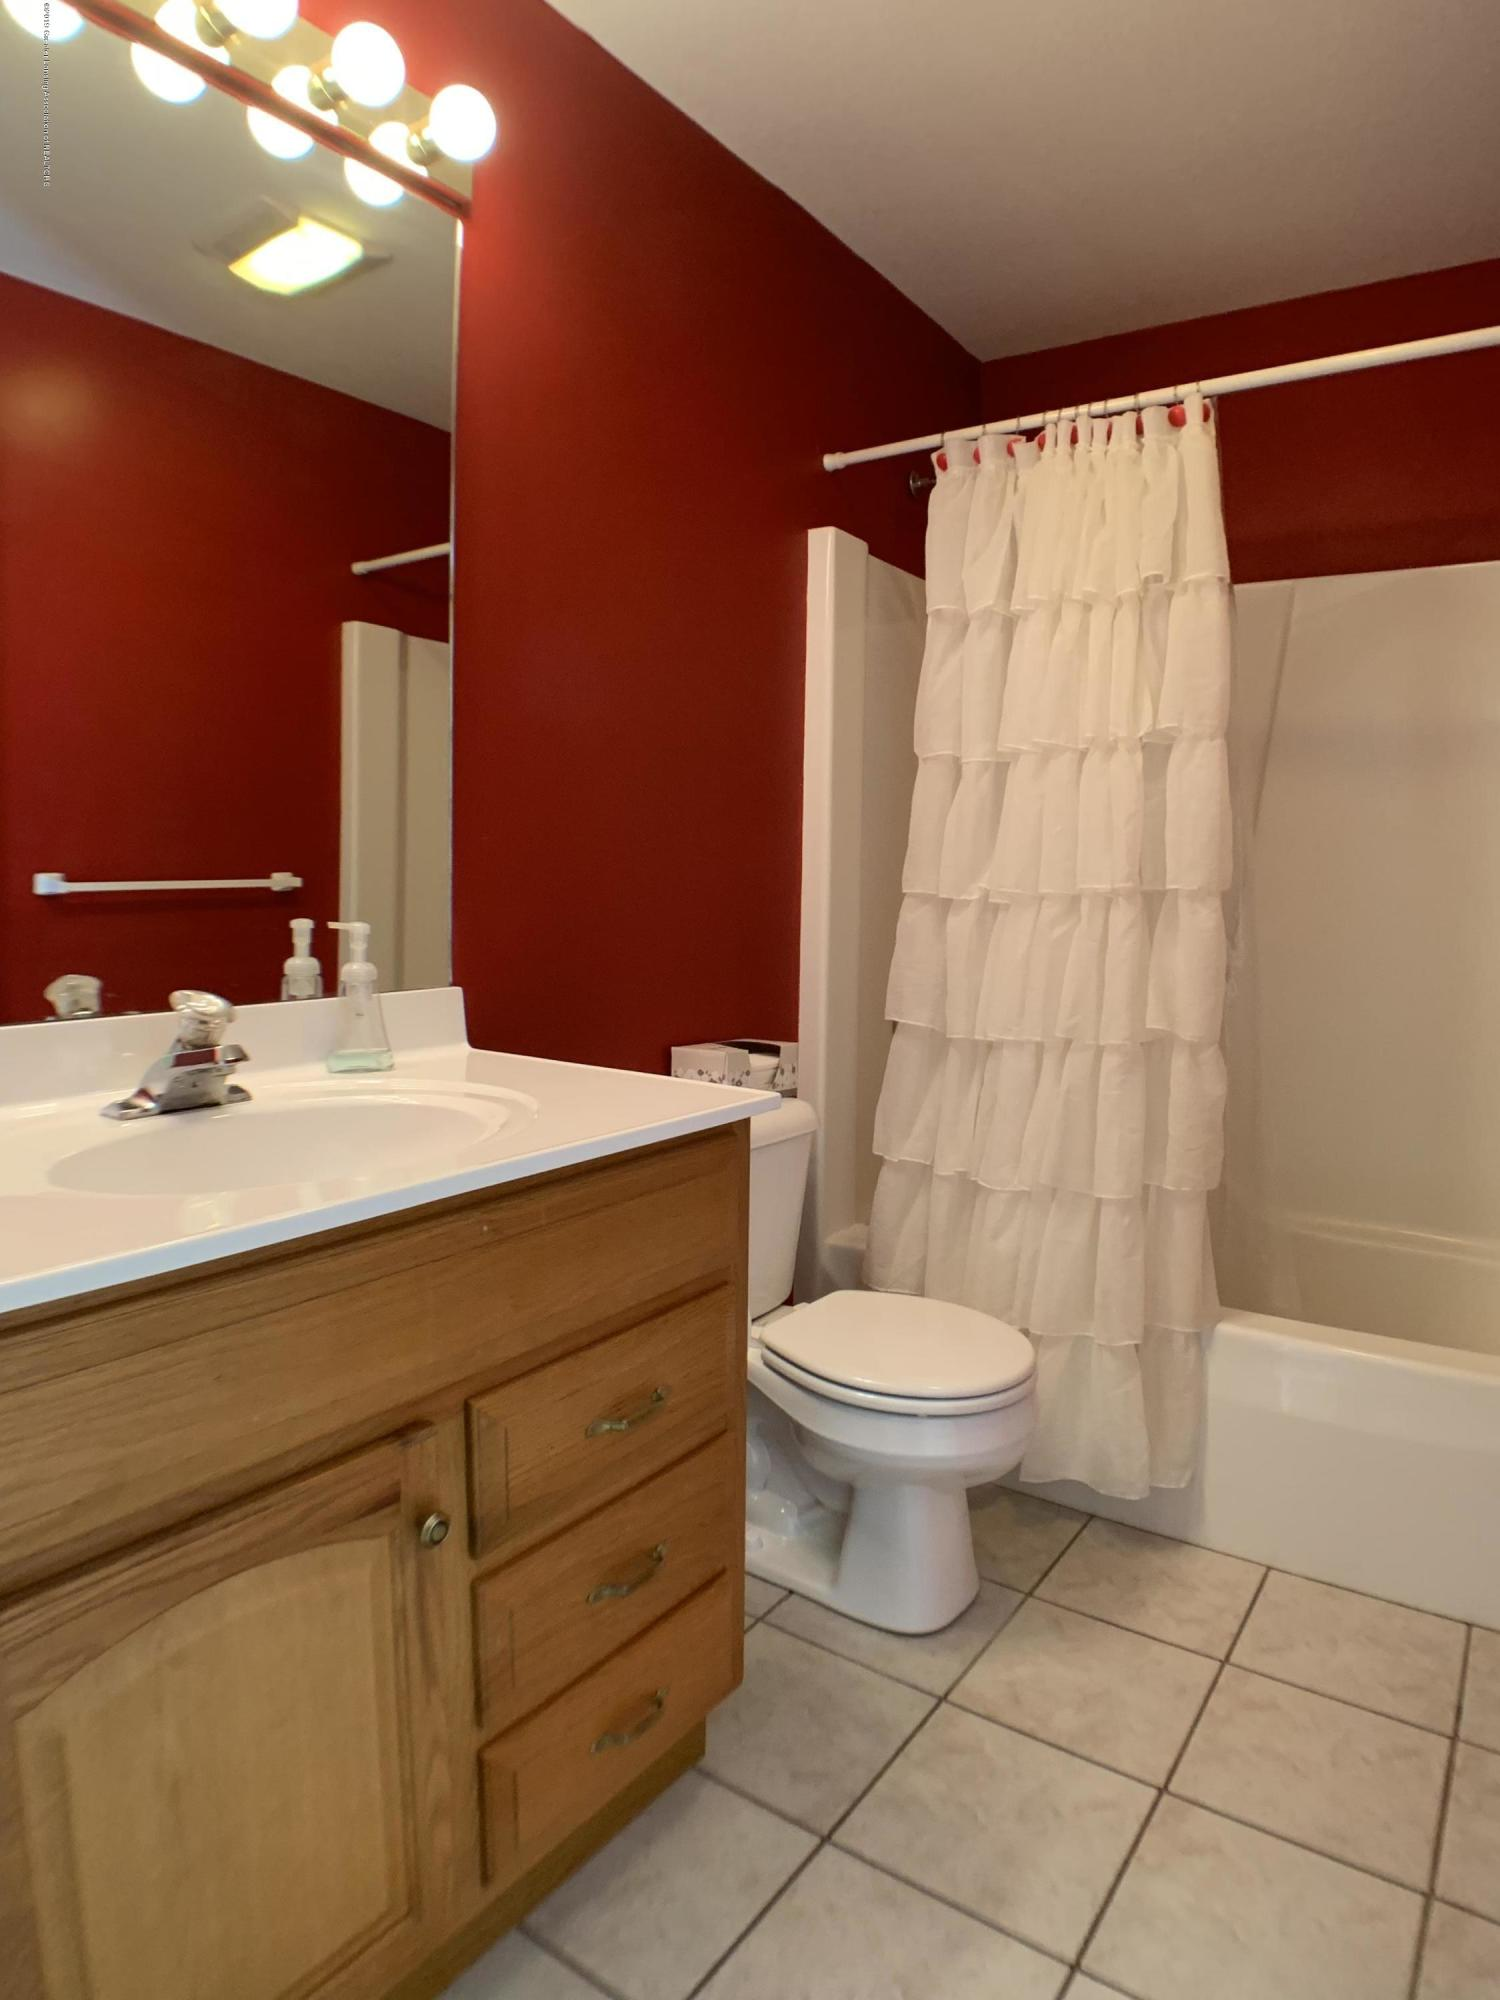 1556 Groombridge Dr - Bathroom - 30